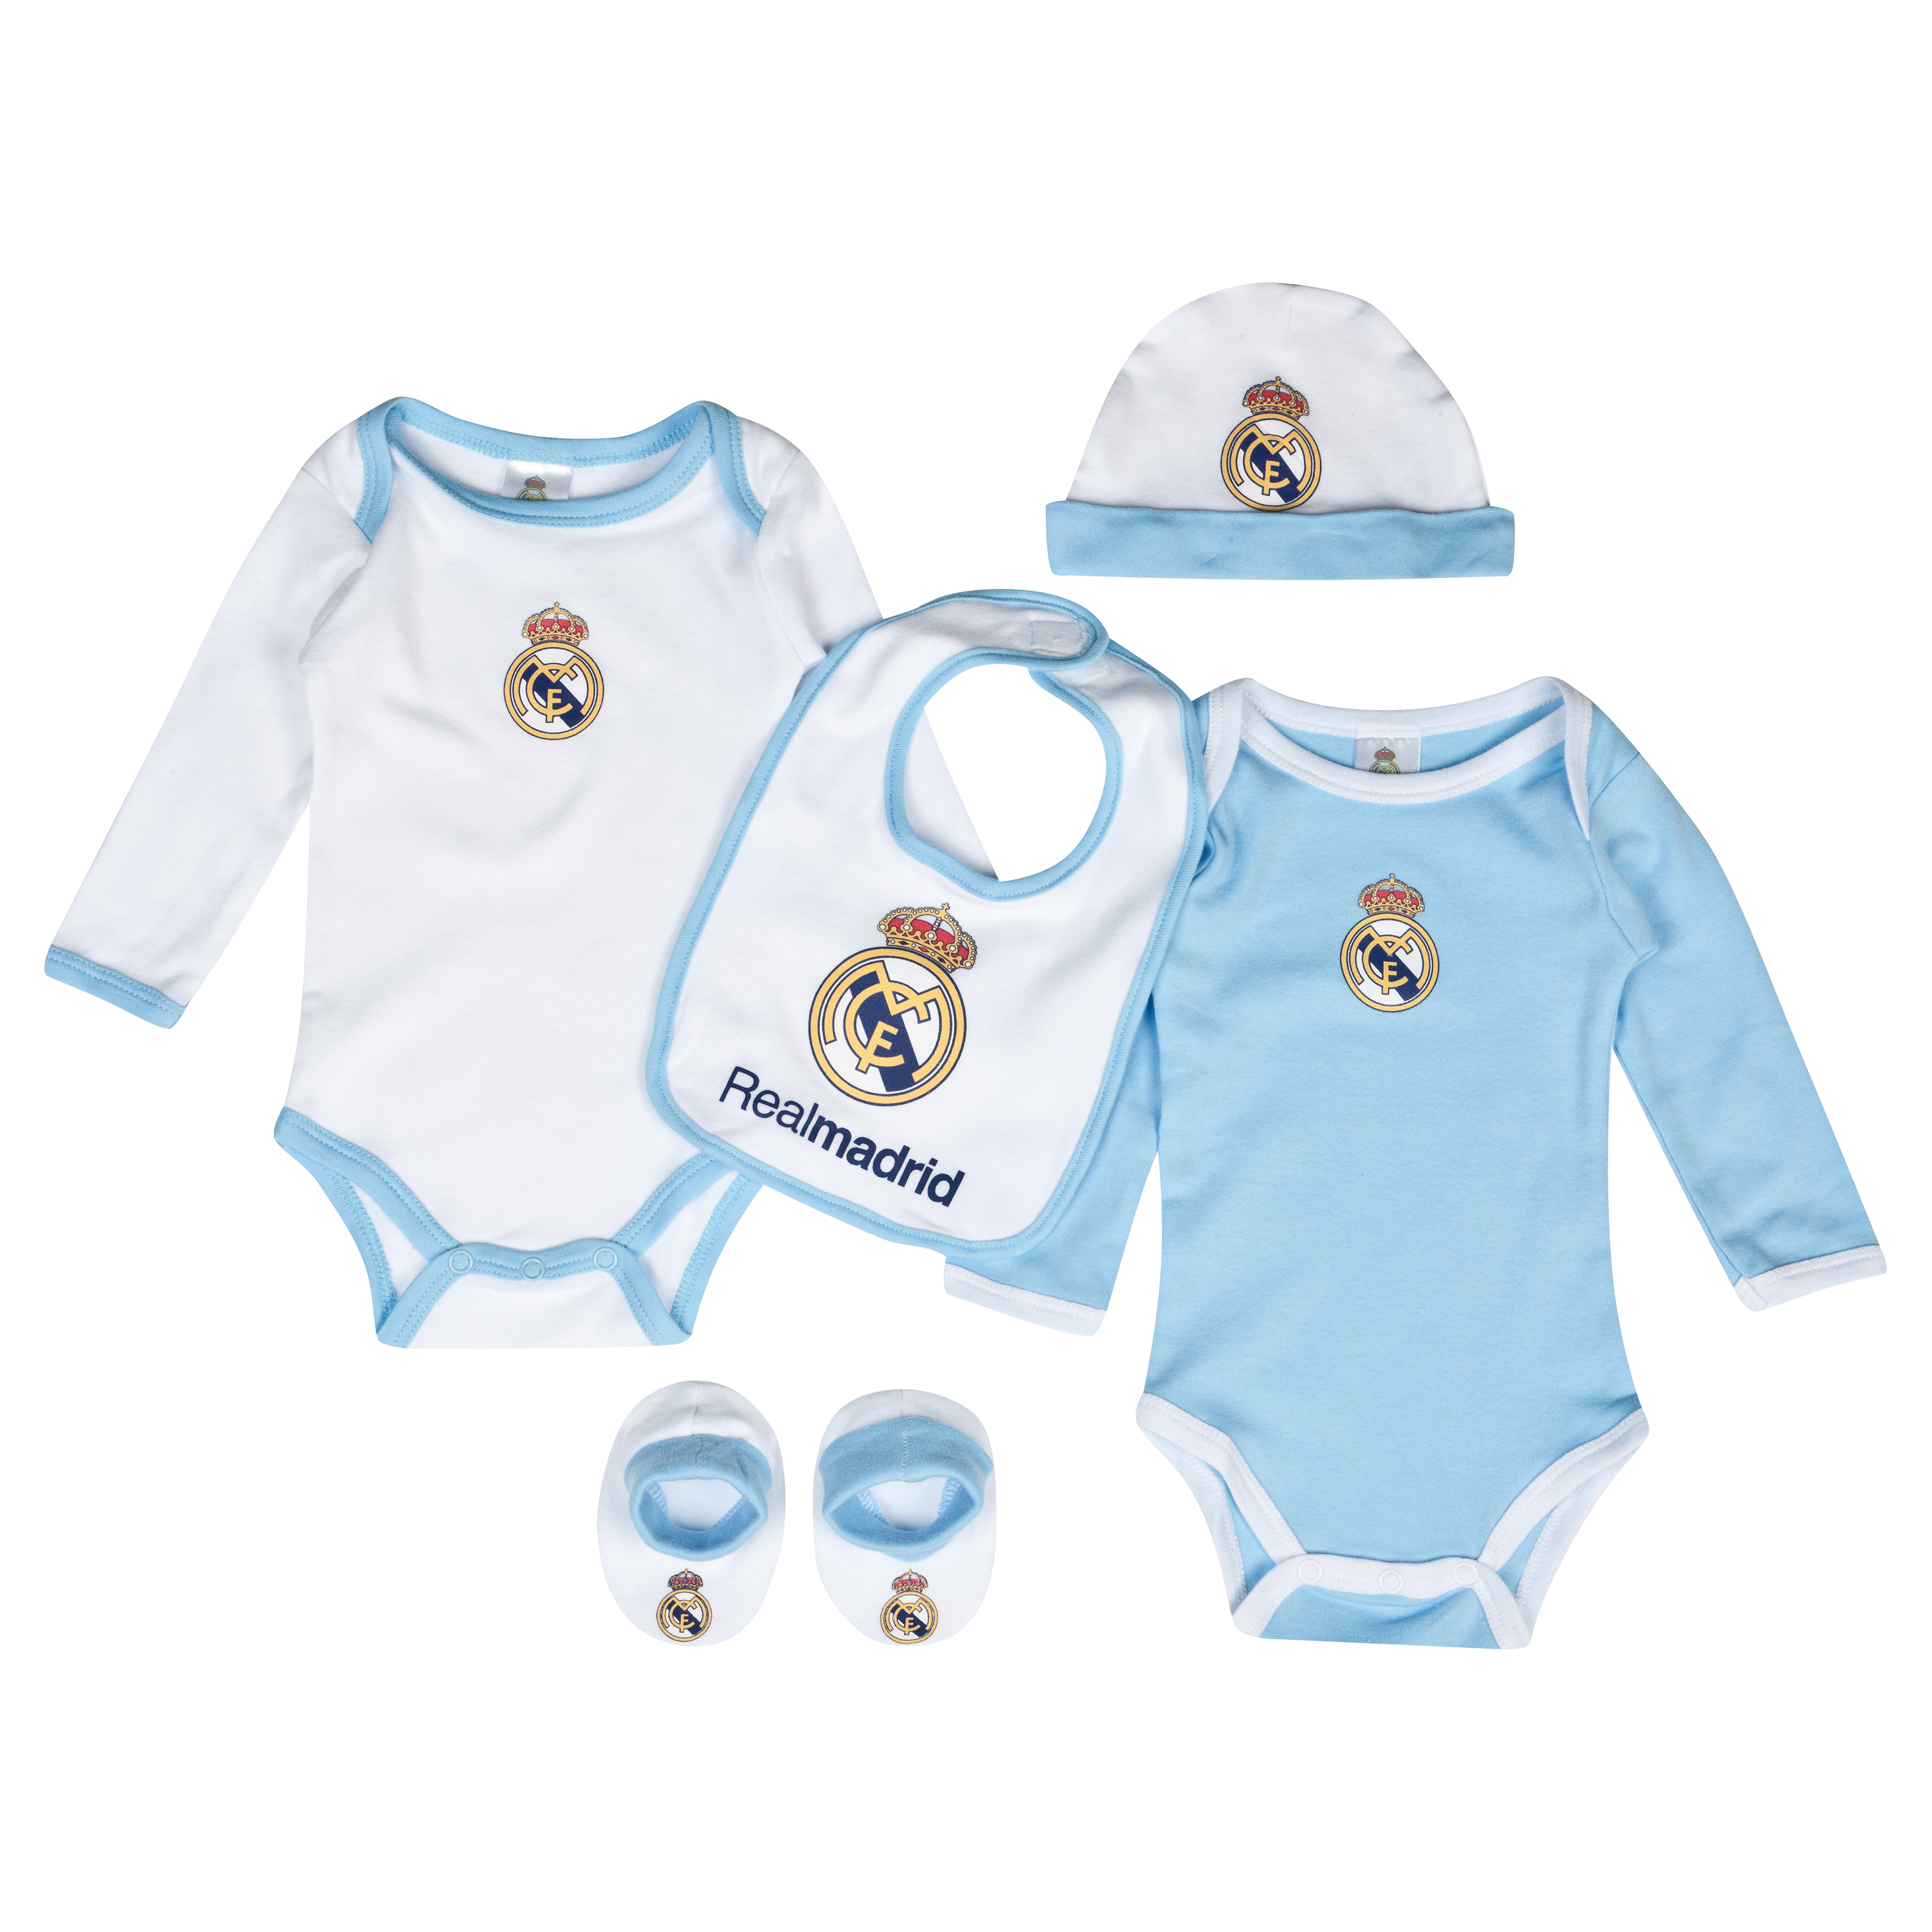 Real Madrid 5 Piece New Born Gift Set - Baby White